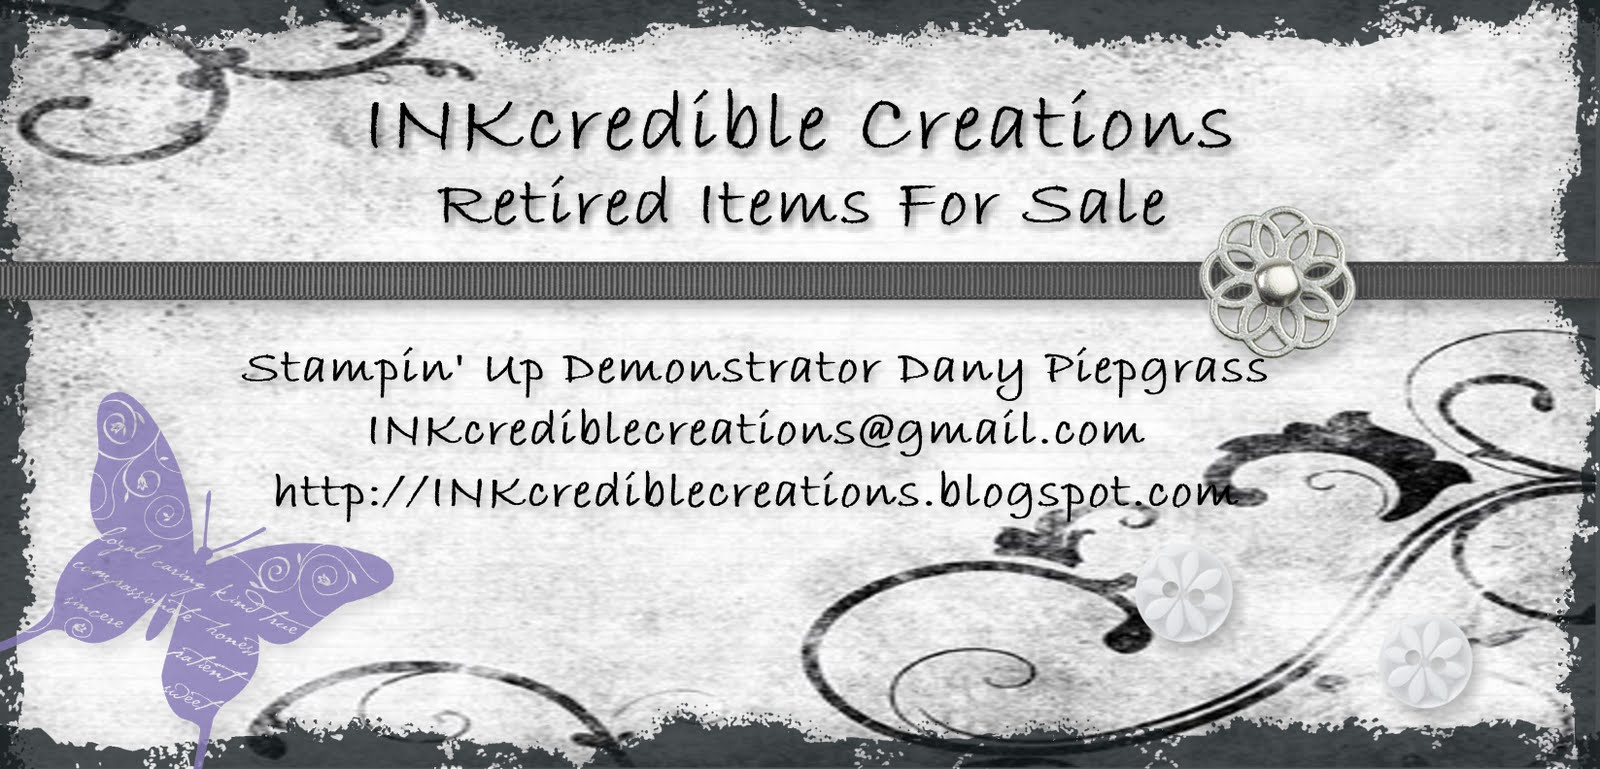 INKcredible Creations Retired Items For Sale